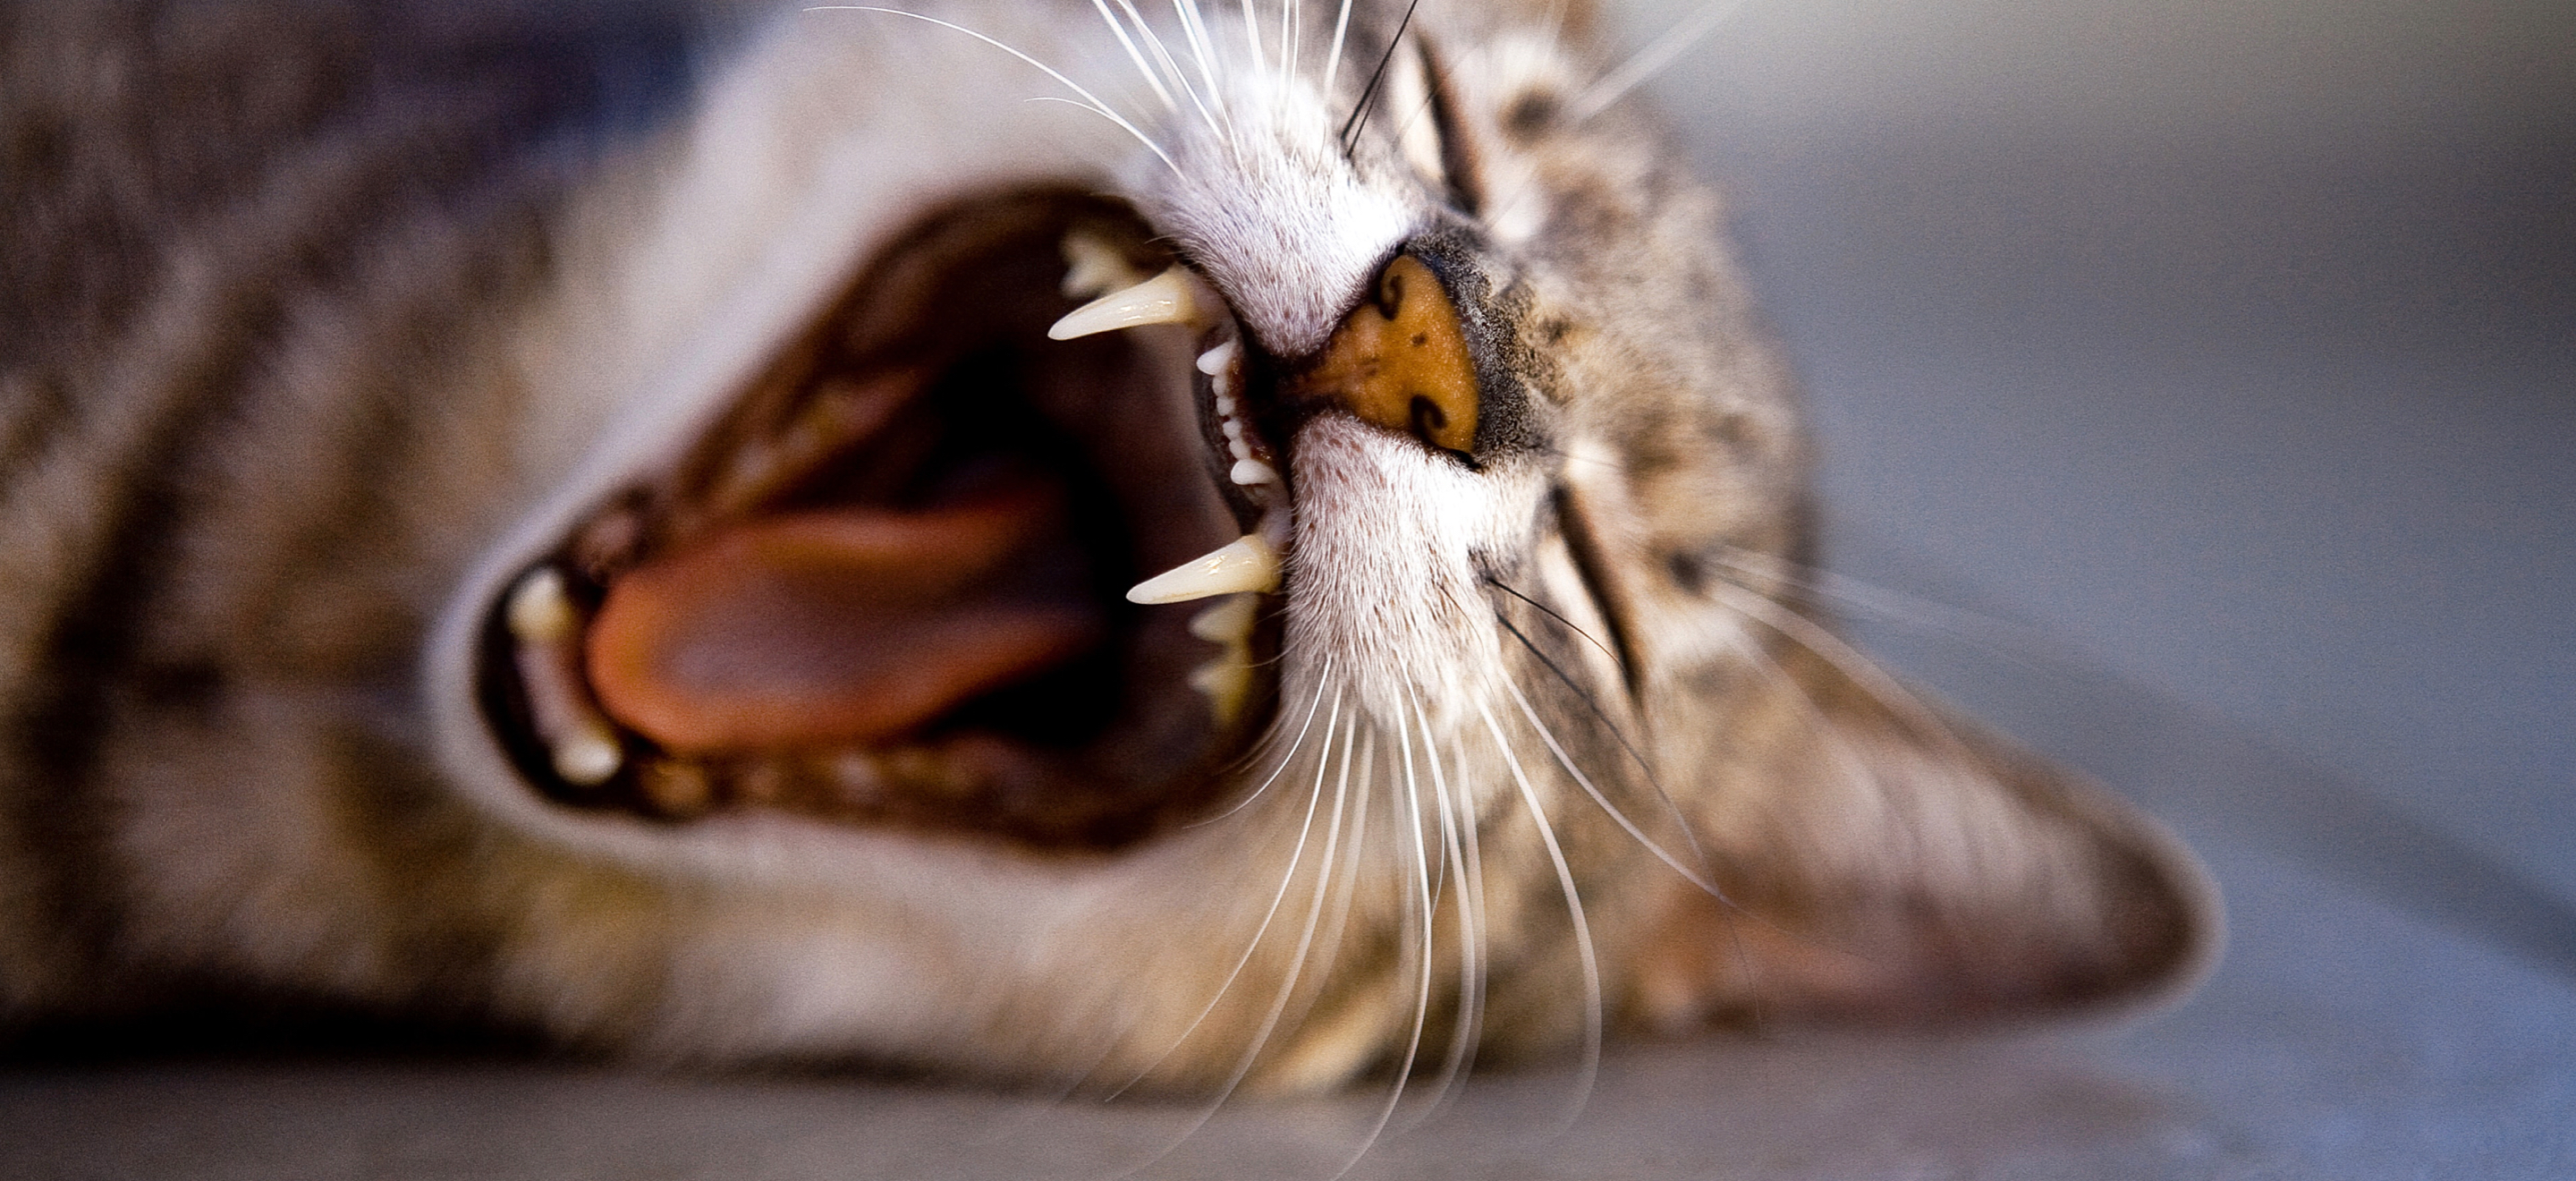 Pet Dentist - Caring for Your Cat or Dogs Teeth